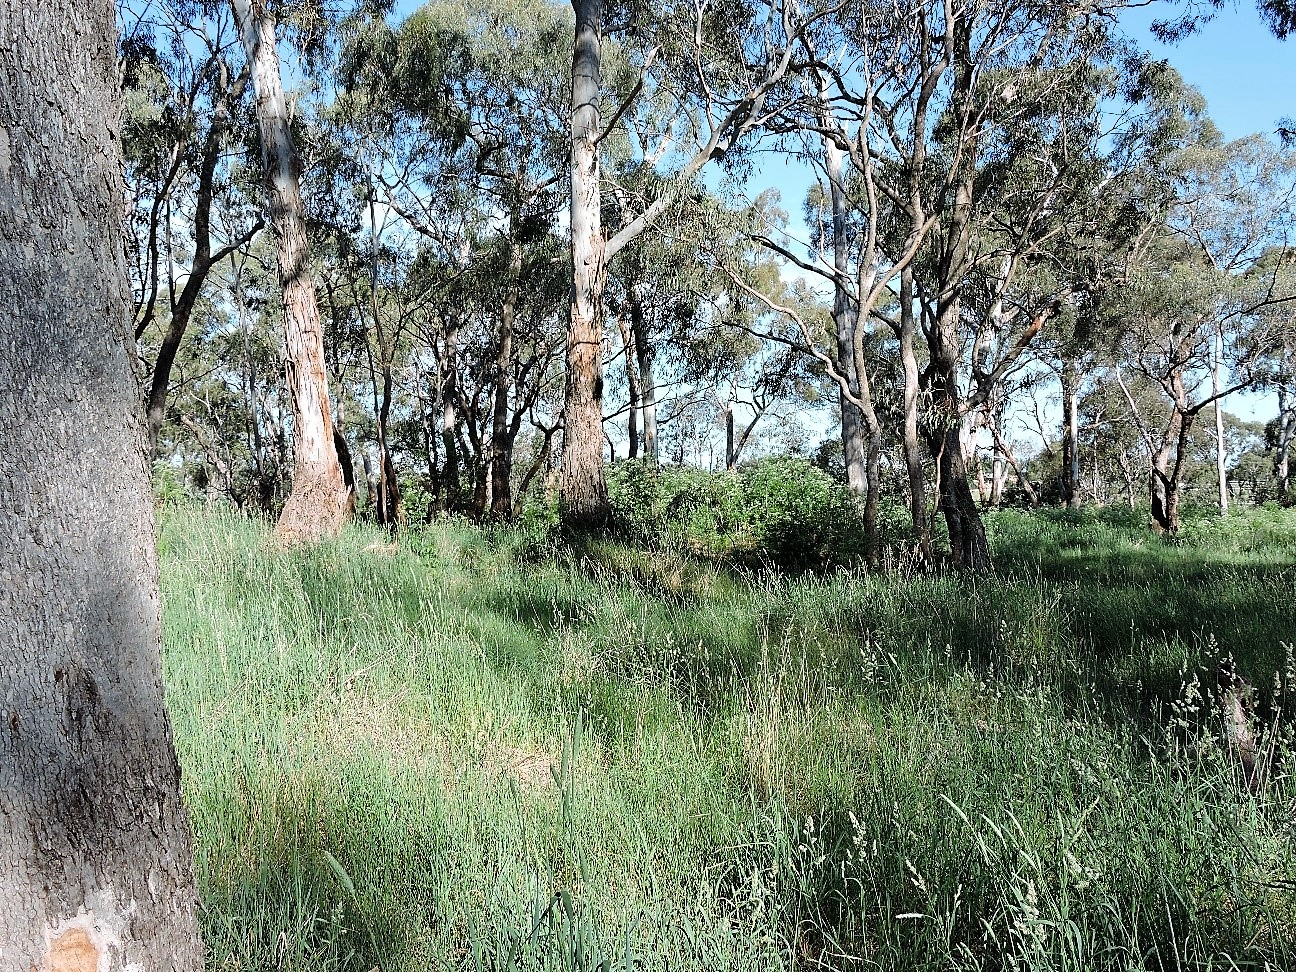 The site following removal of weeds by the forest mulcher